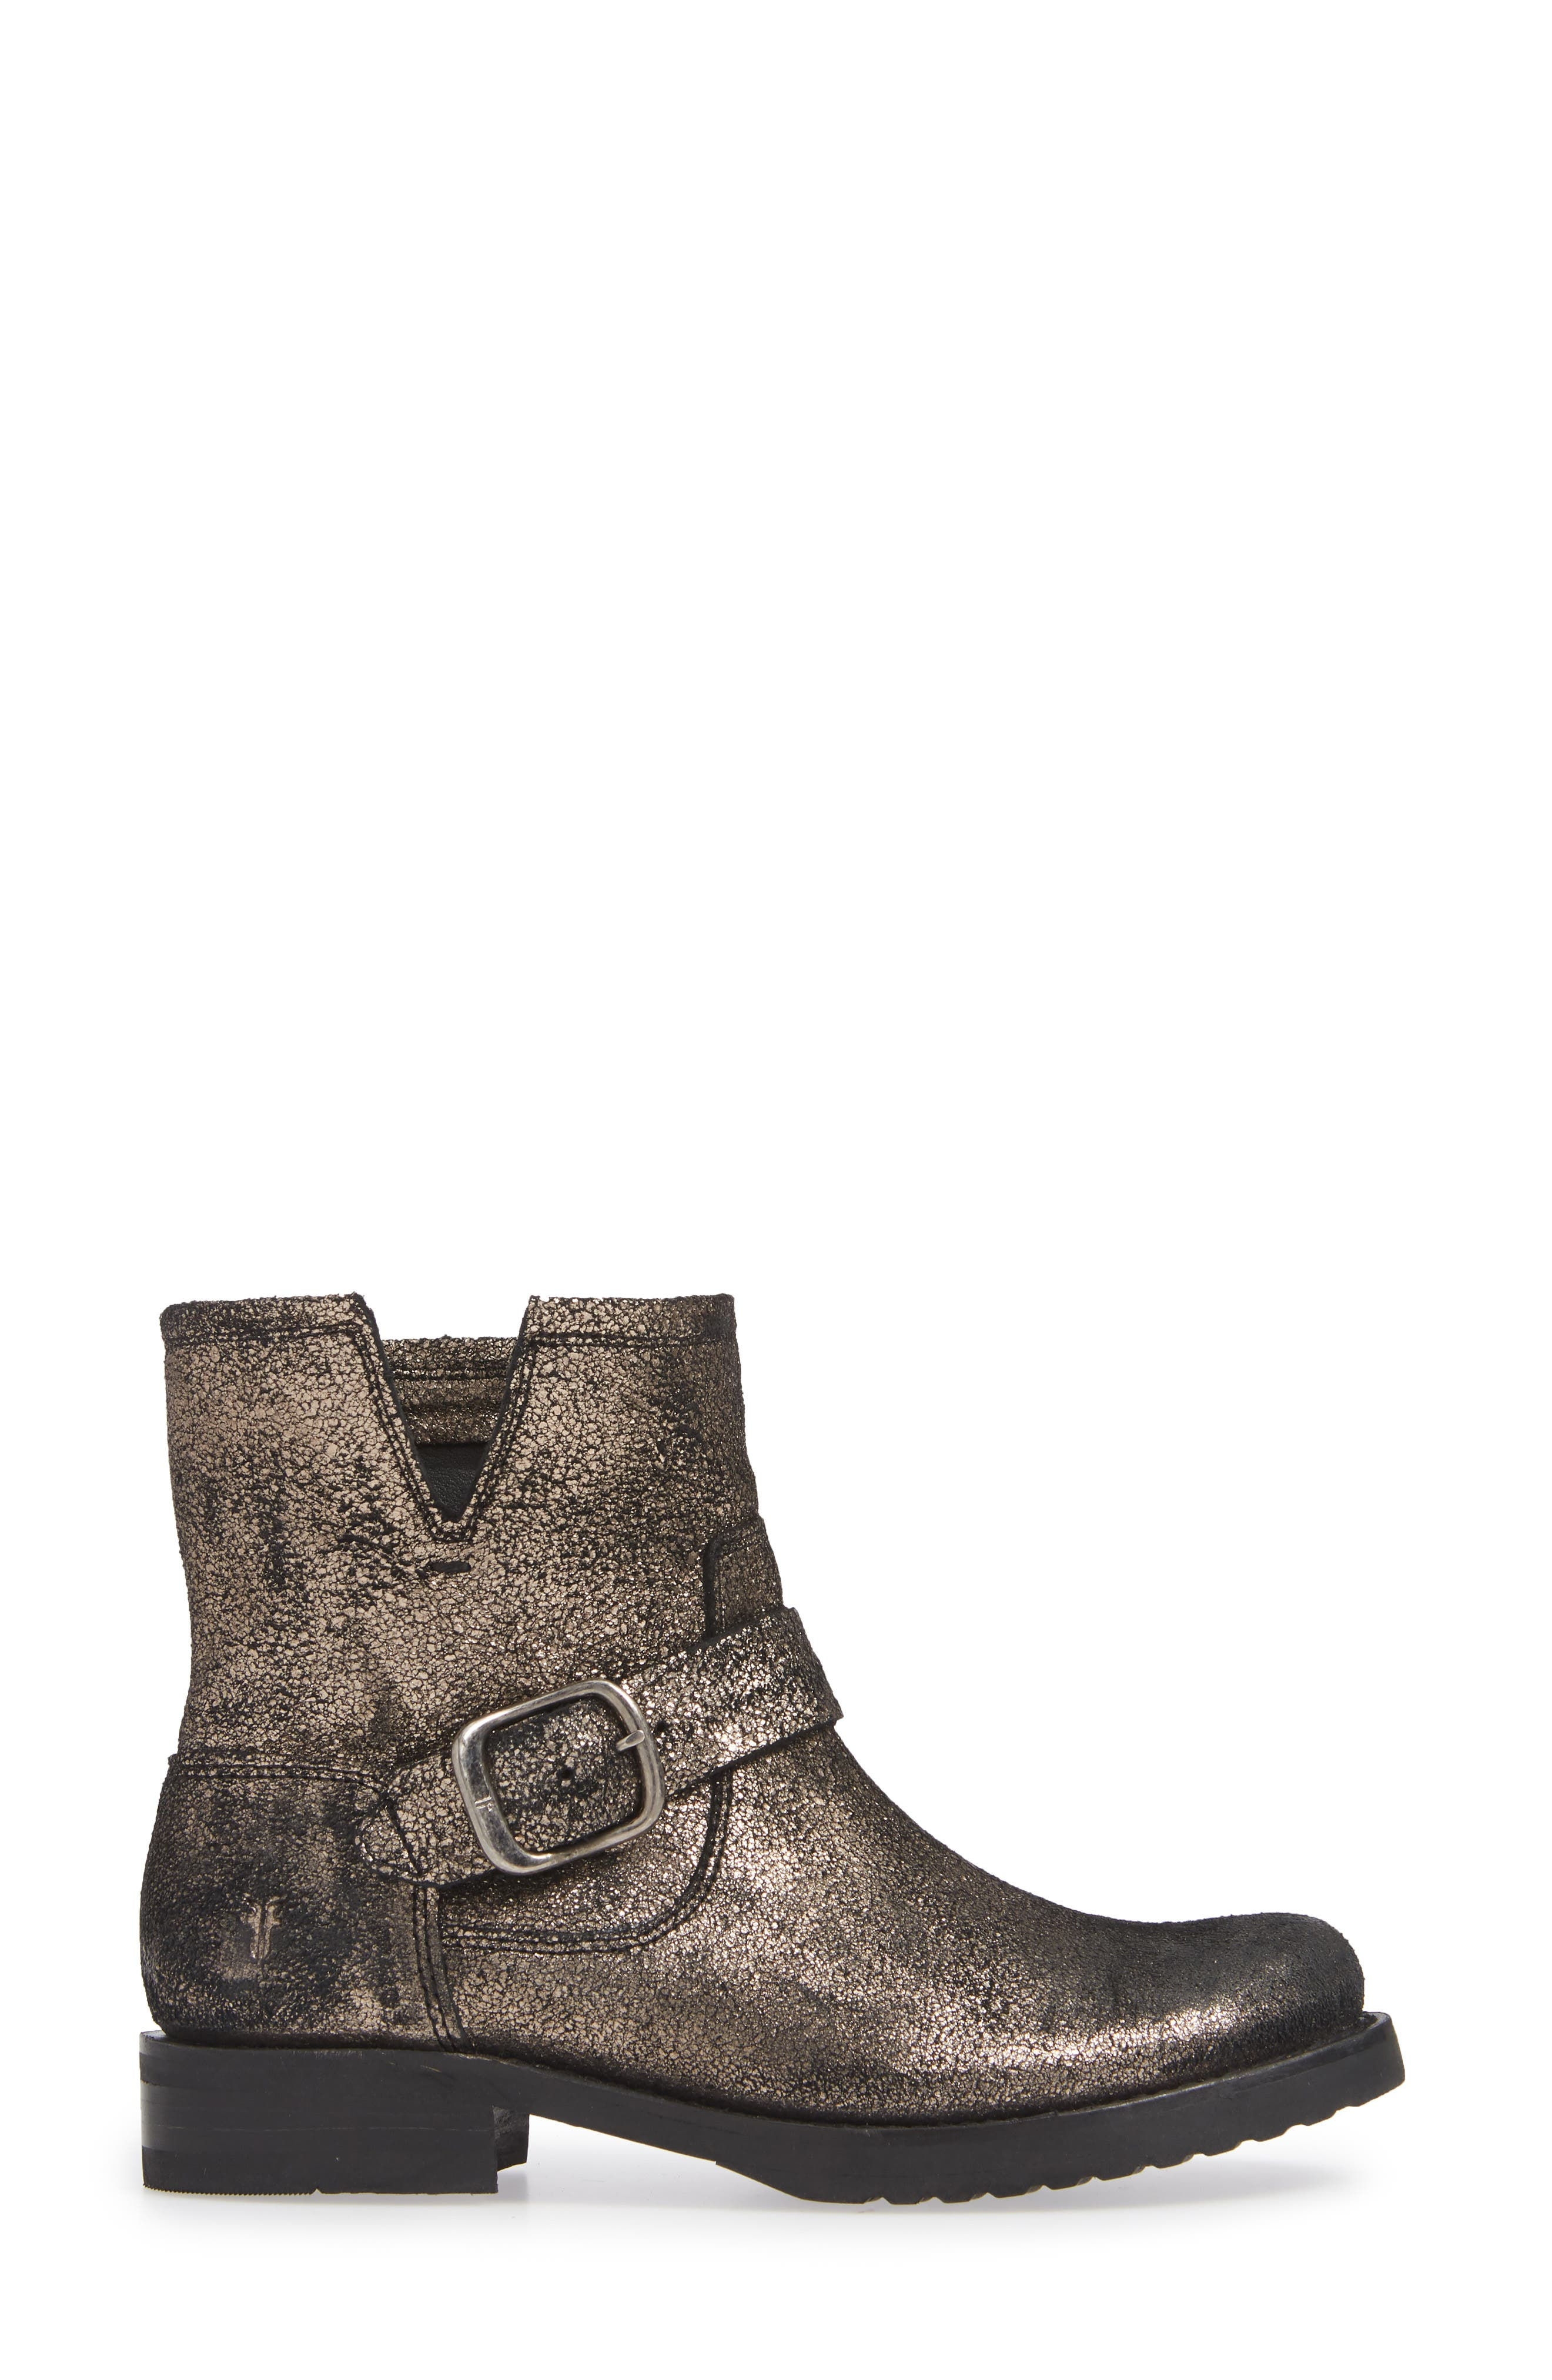 Veronica Bootie,                             Alternate thumbnail 3, color,                             GOLD LEATHER